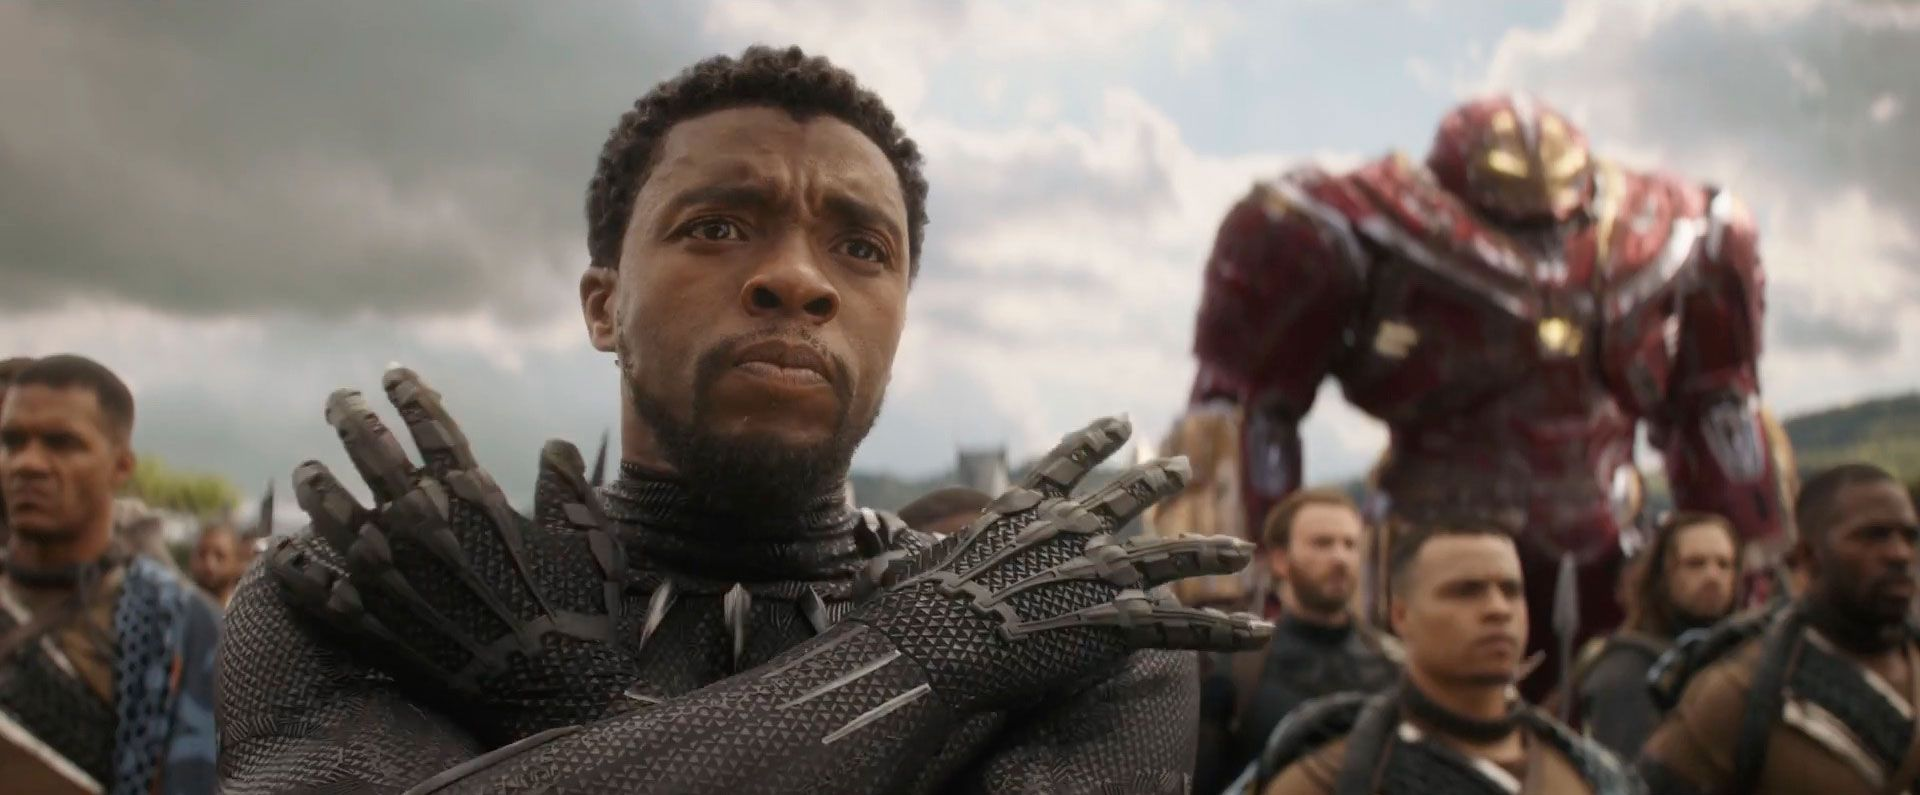 Black Panther in Avengers: Infinity War - Wakanda's role